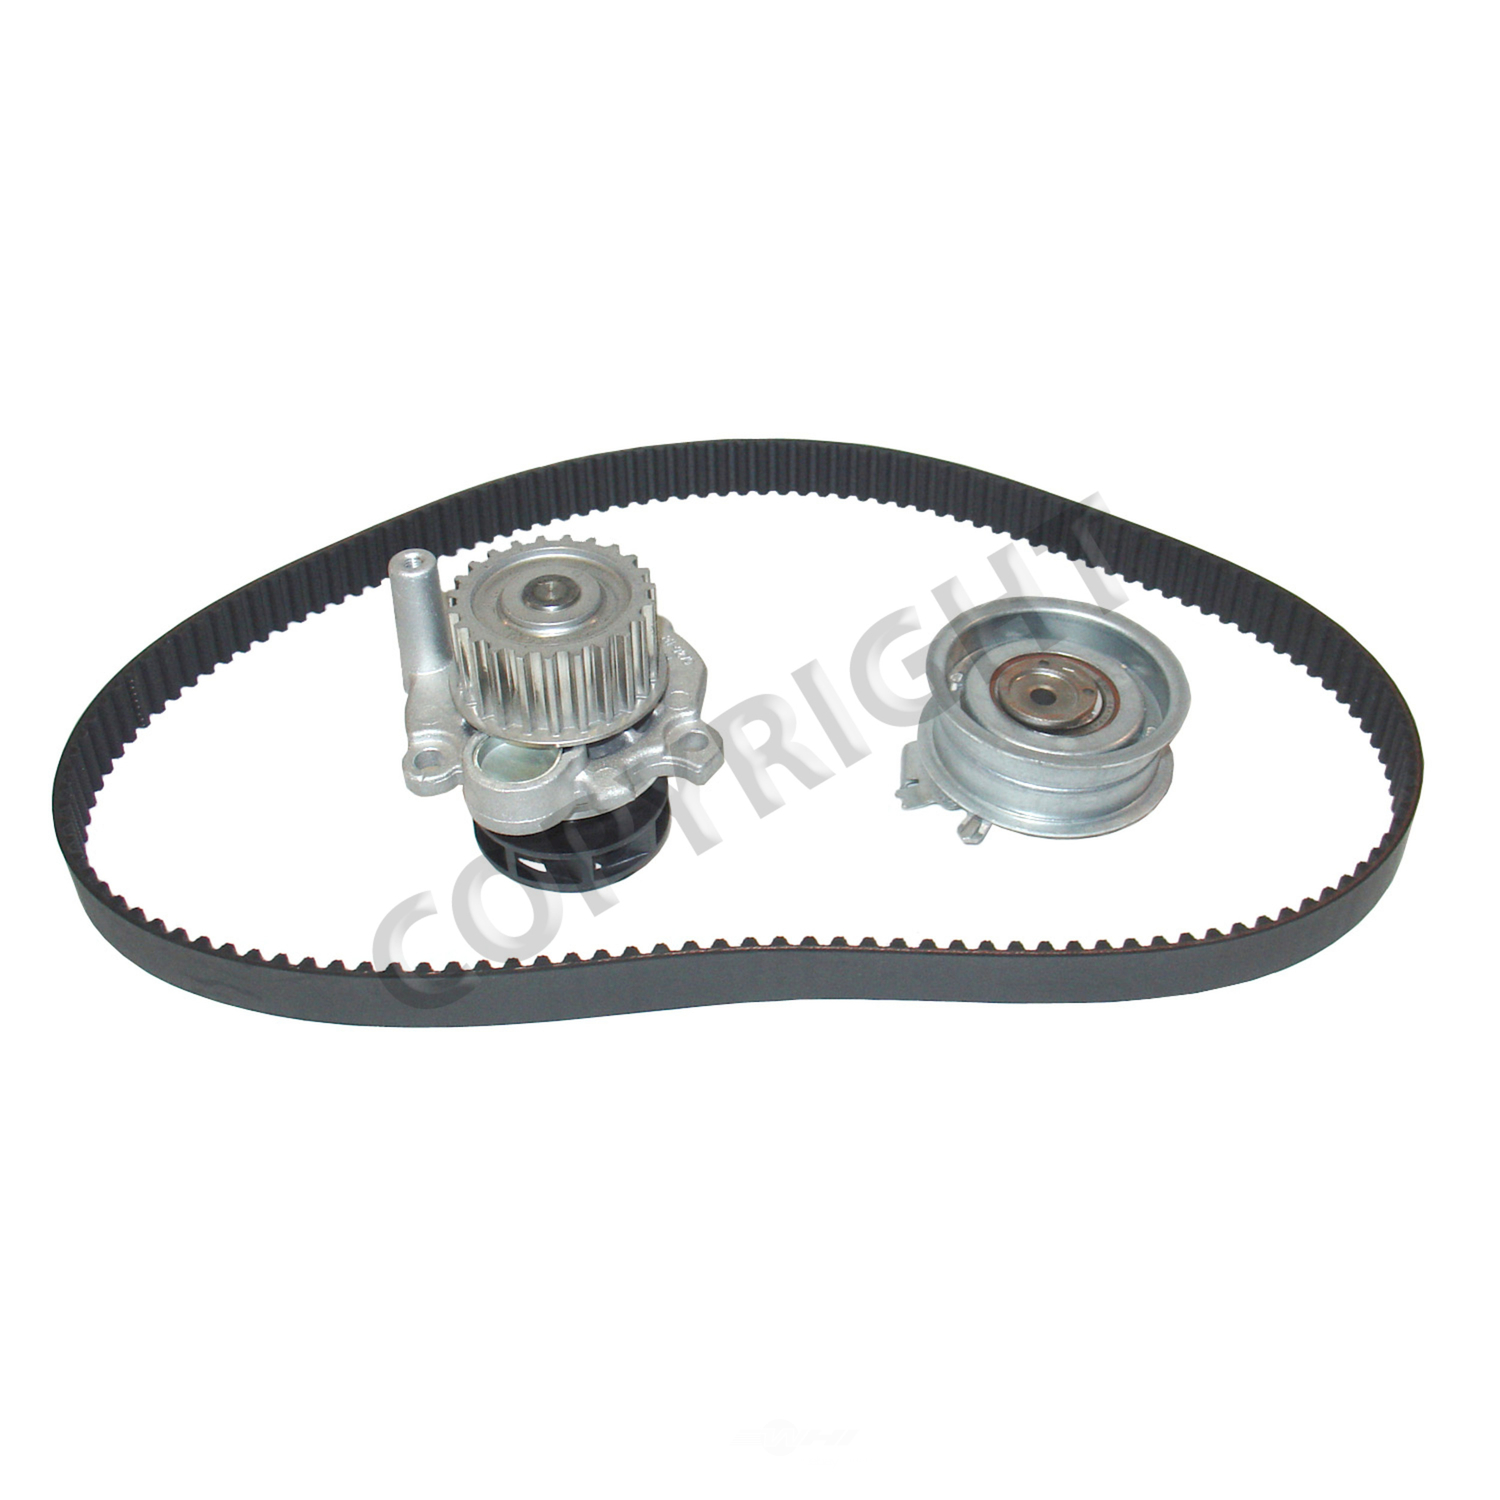 AIRTEX AUTOMOTIVE DIVISION - Engine Timing Belt Kit with Water Pump - ATN AWK1239